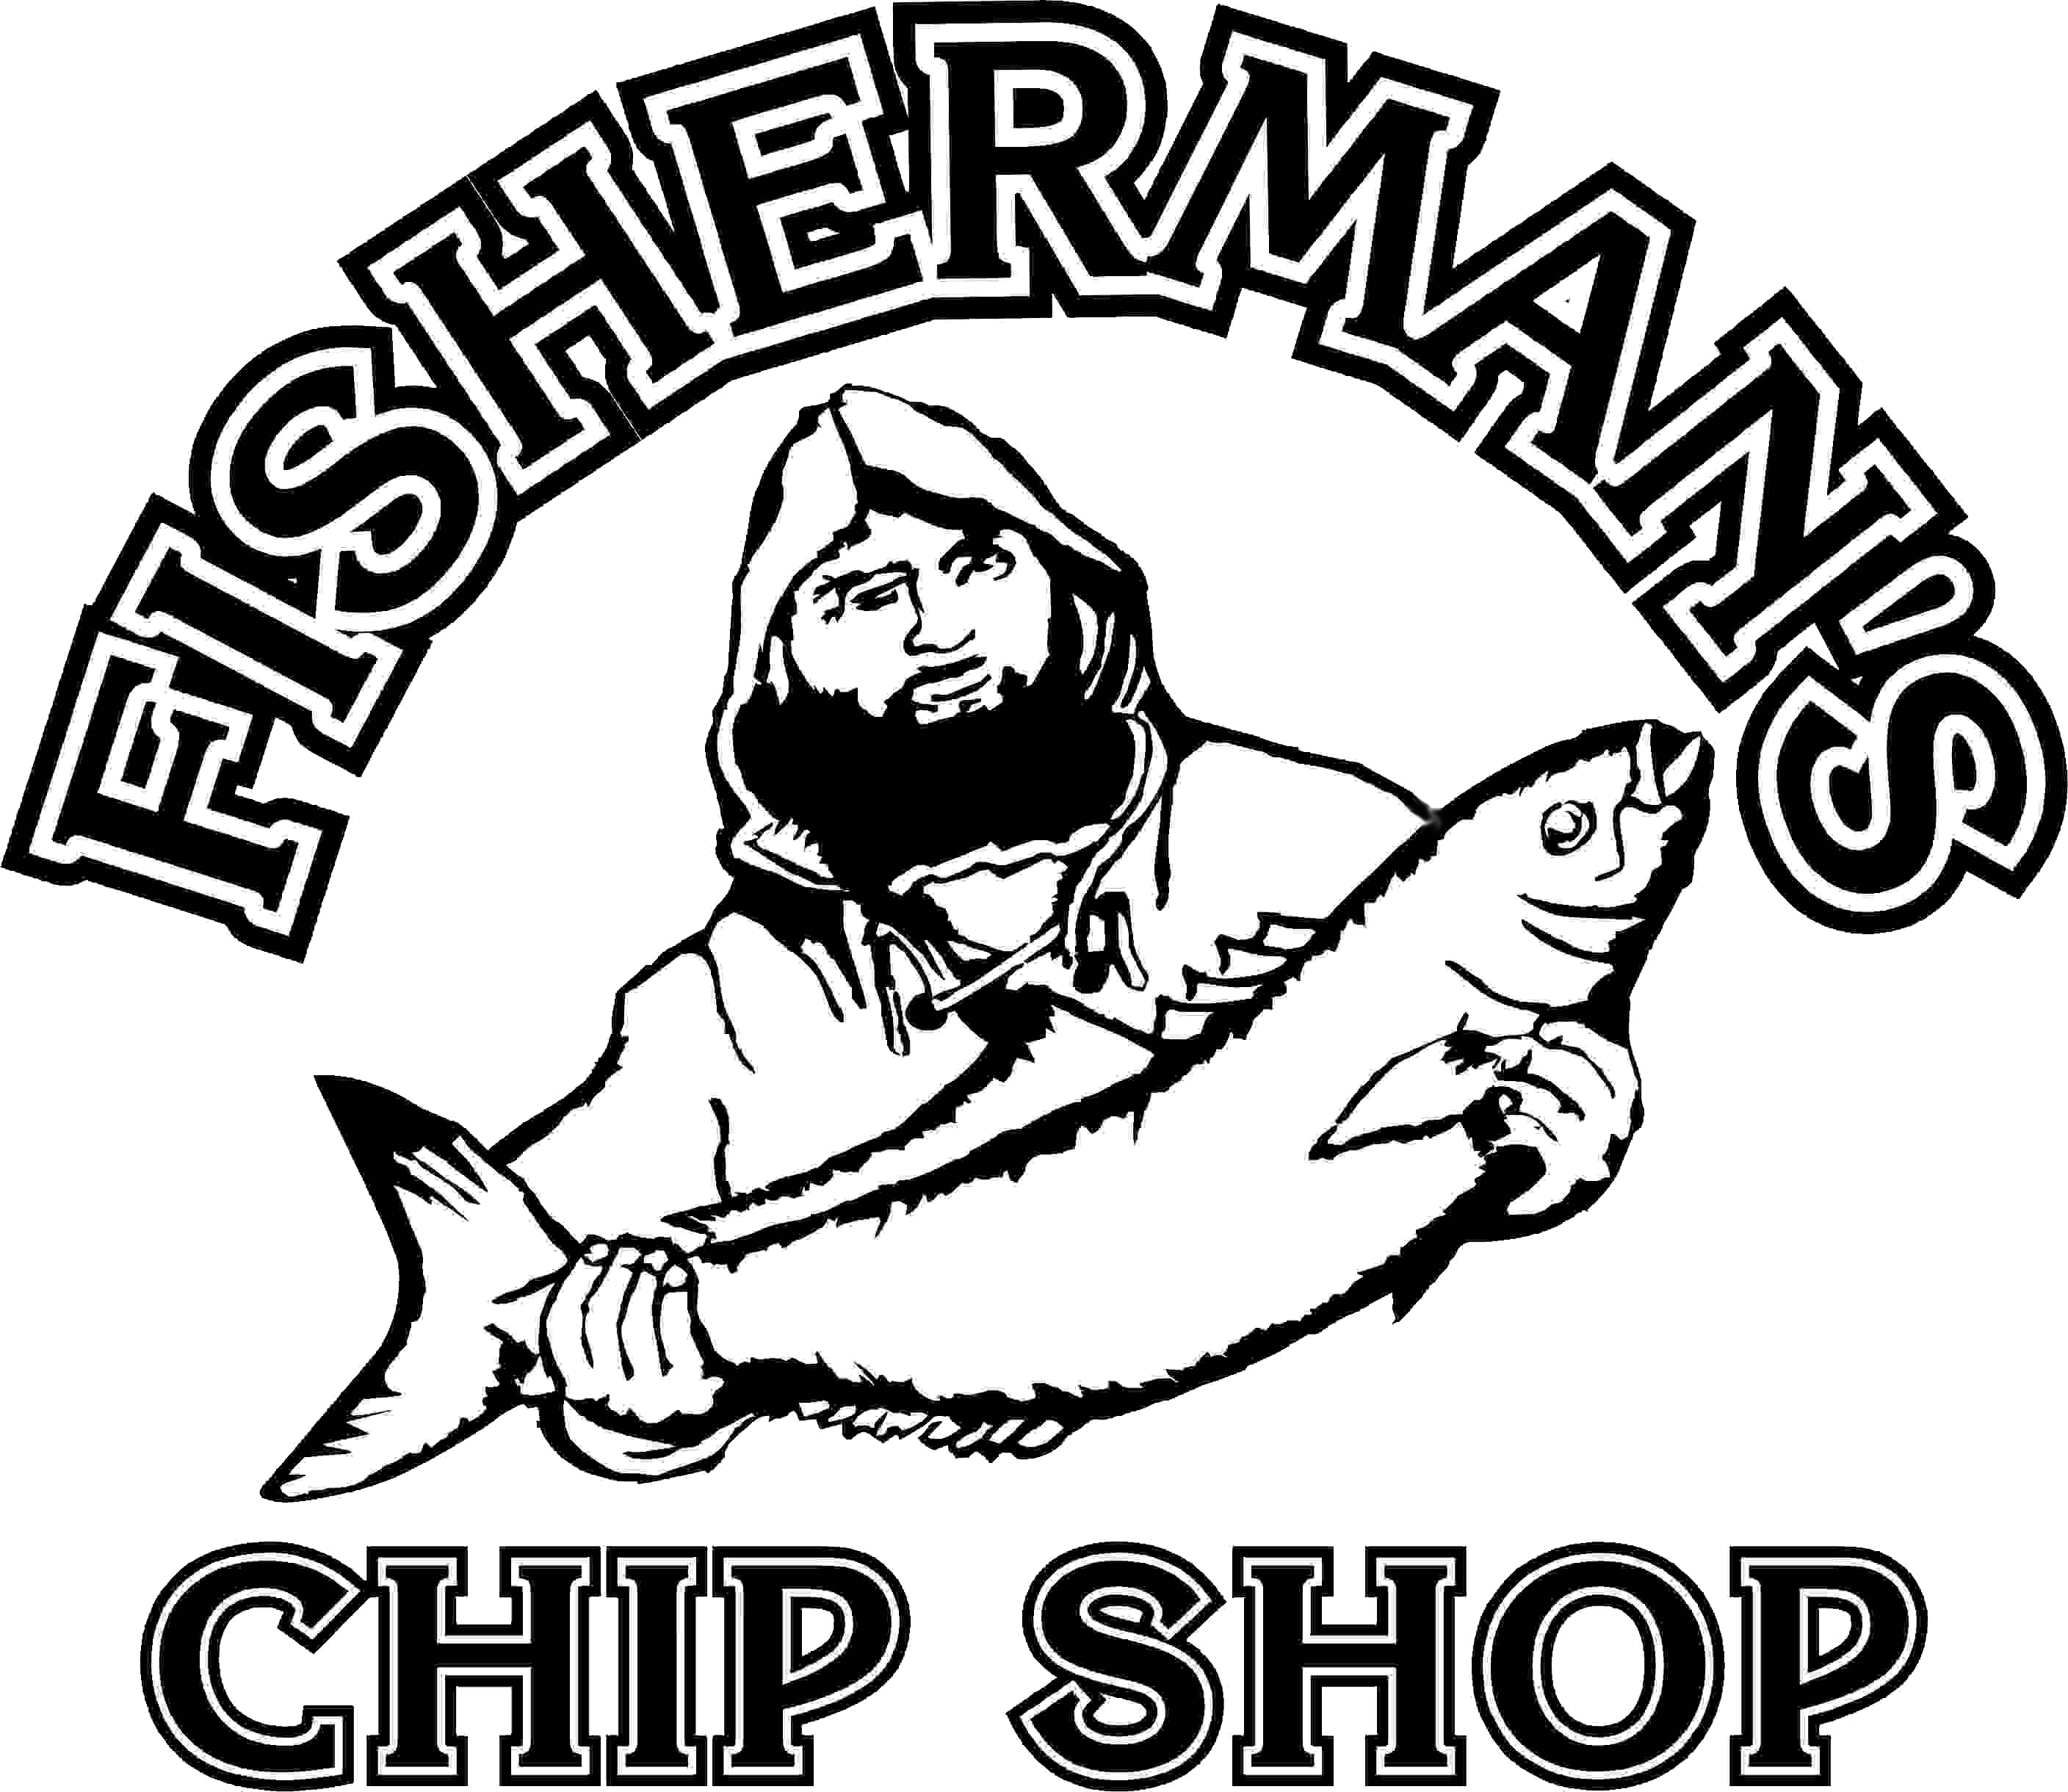 Fish and chips drawing. Fisherman clipart fishing peter